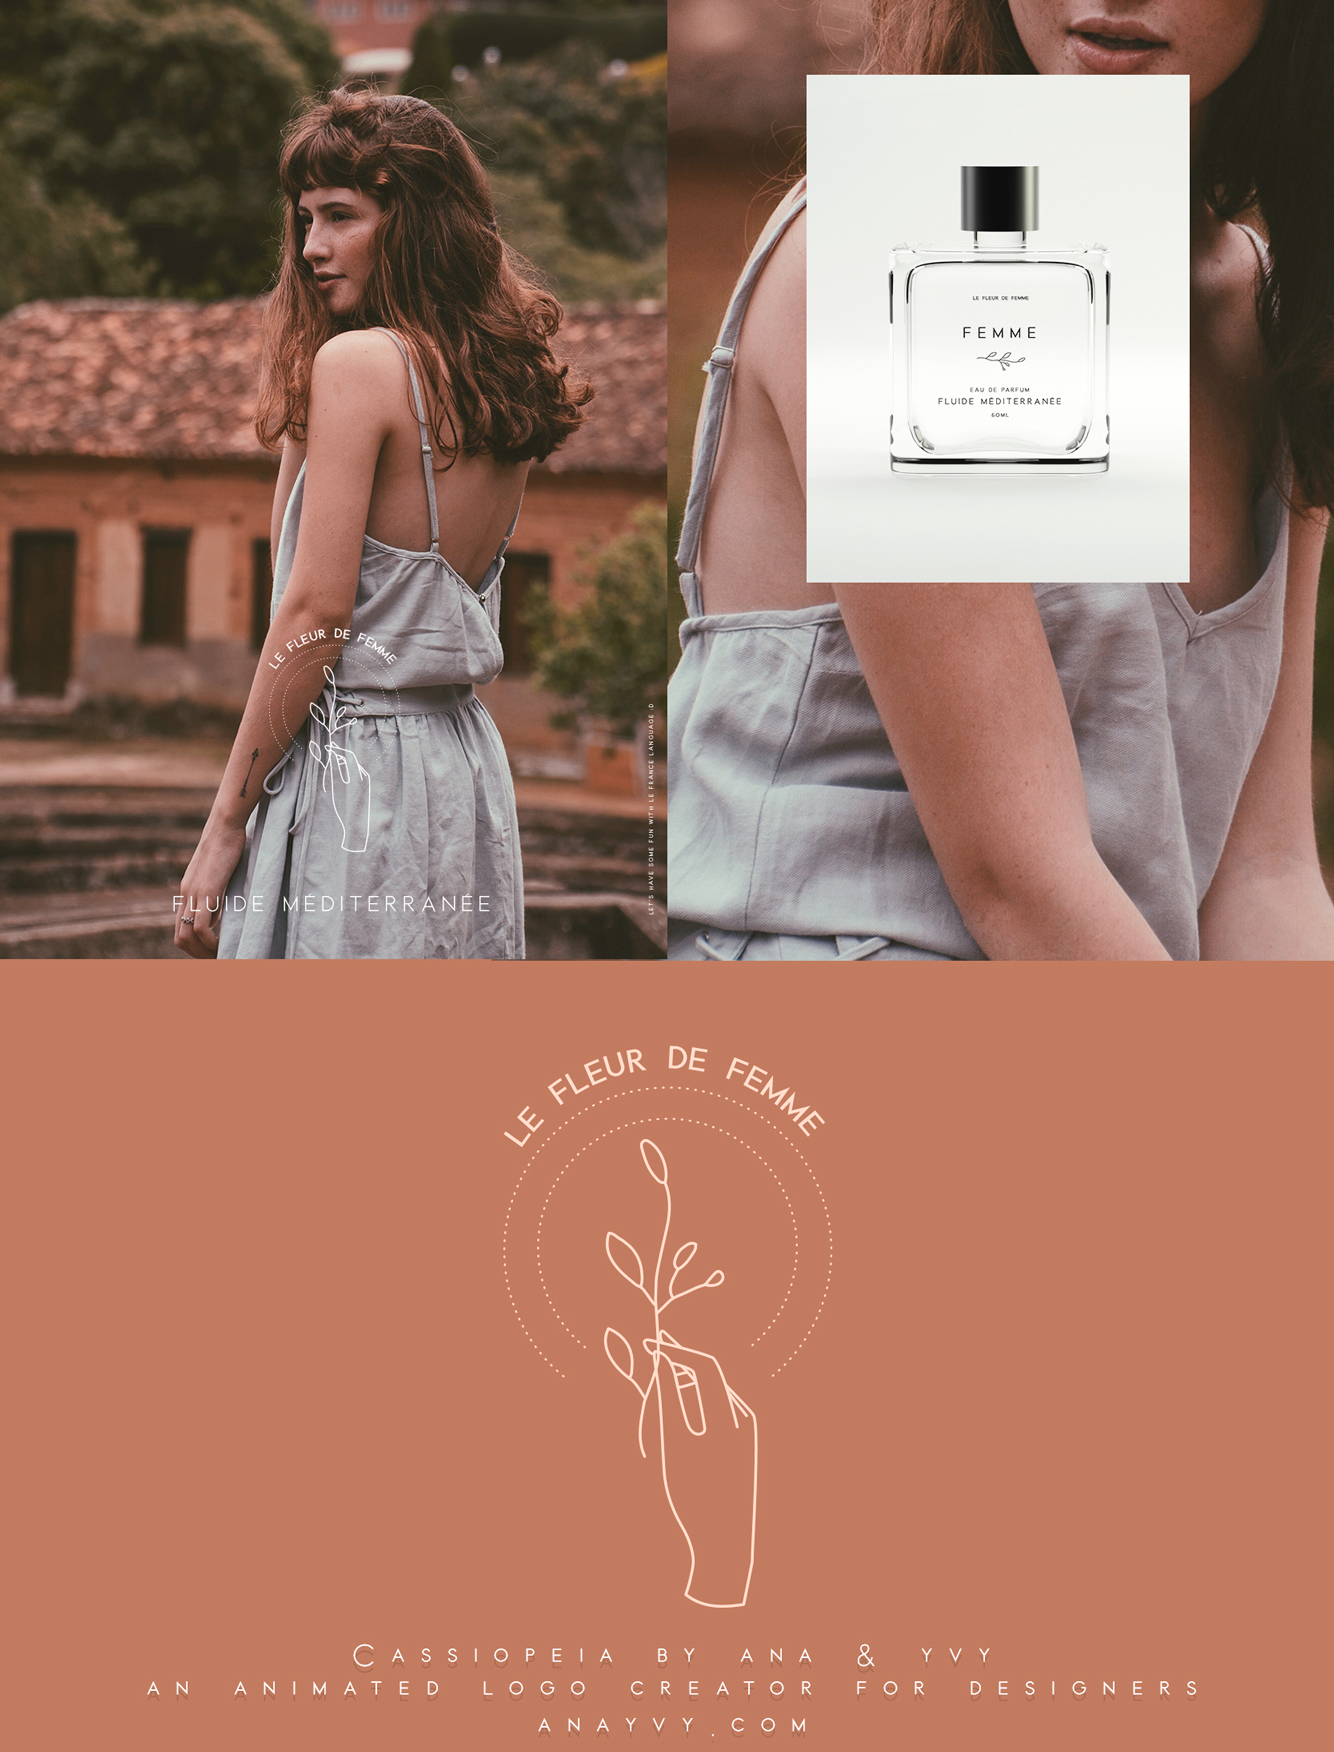 Cassiopeia-logo-design-animation-anayvy-motion-vintage-hand-greenery-apothecary-parfum-2